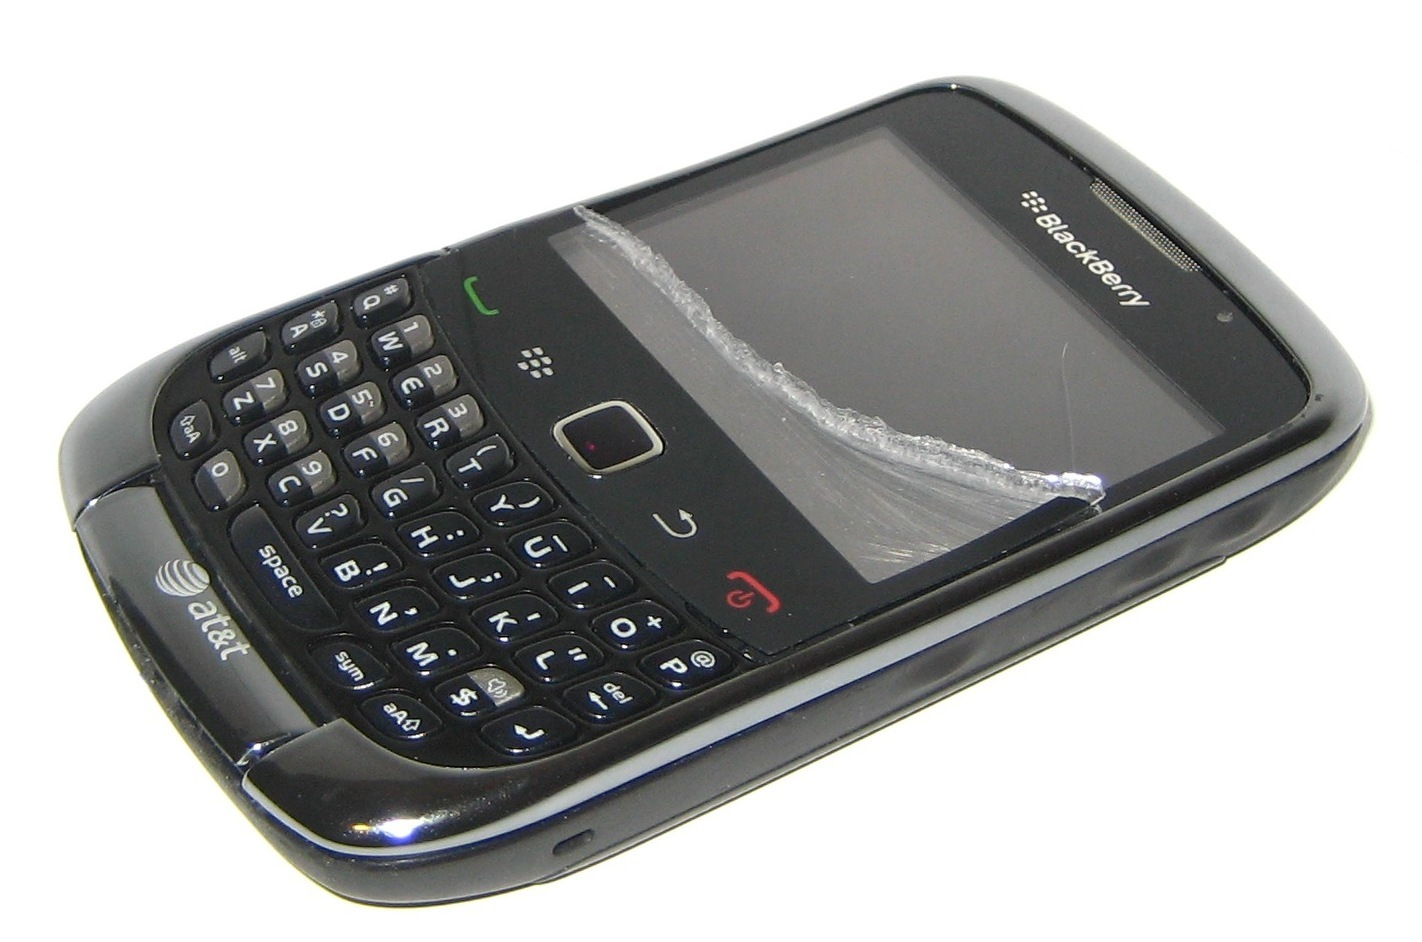 Blackberry Curve 9300 White Blackberry Curve 9300